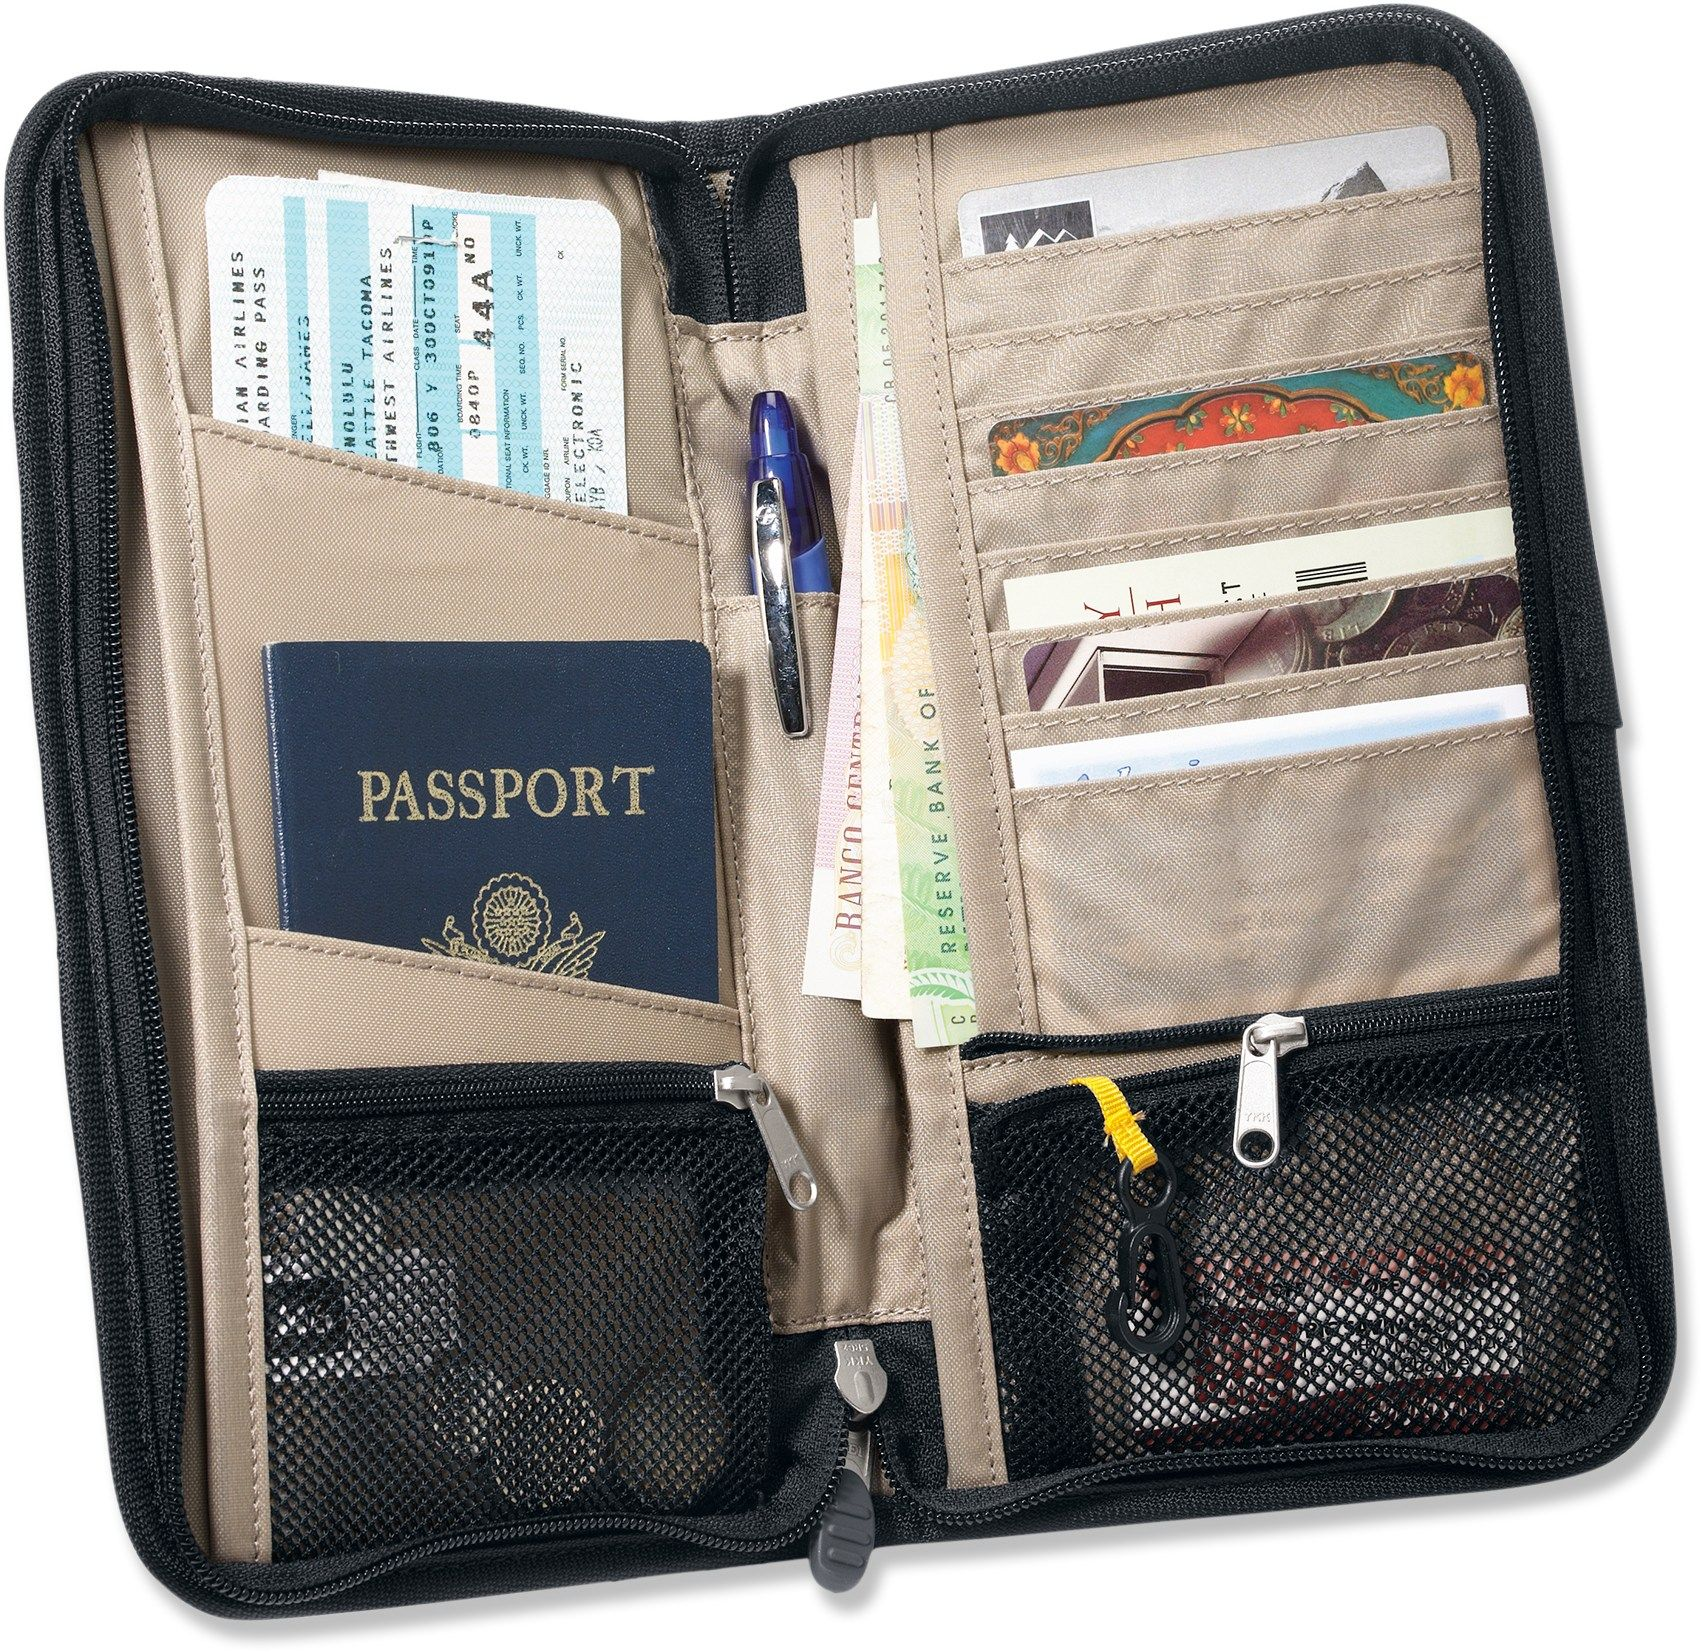 rei travel document organizer special buy at rei travel products travel. Black Bedroom Furniture Sets. Home Design Ideas